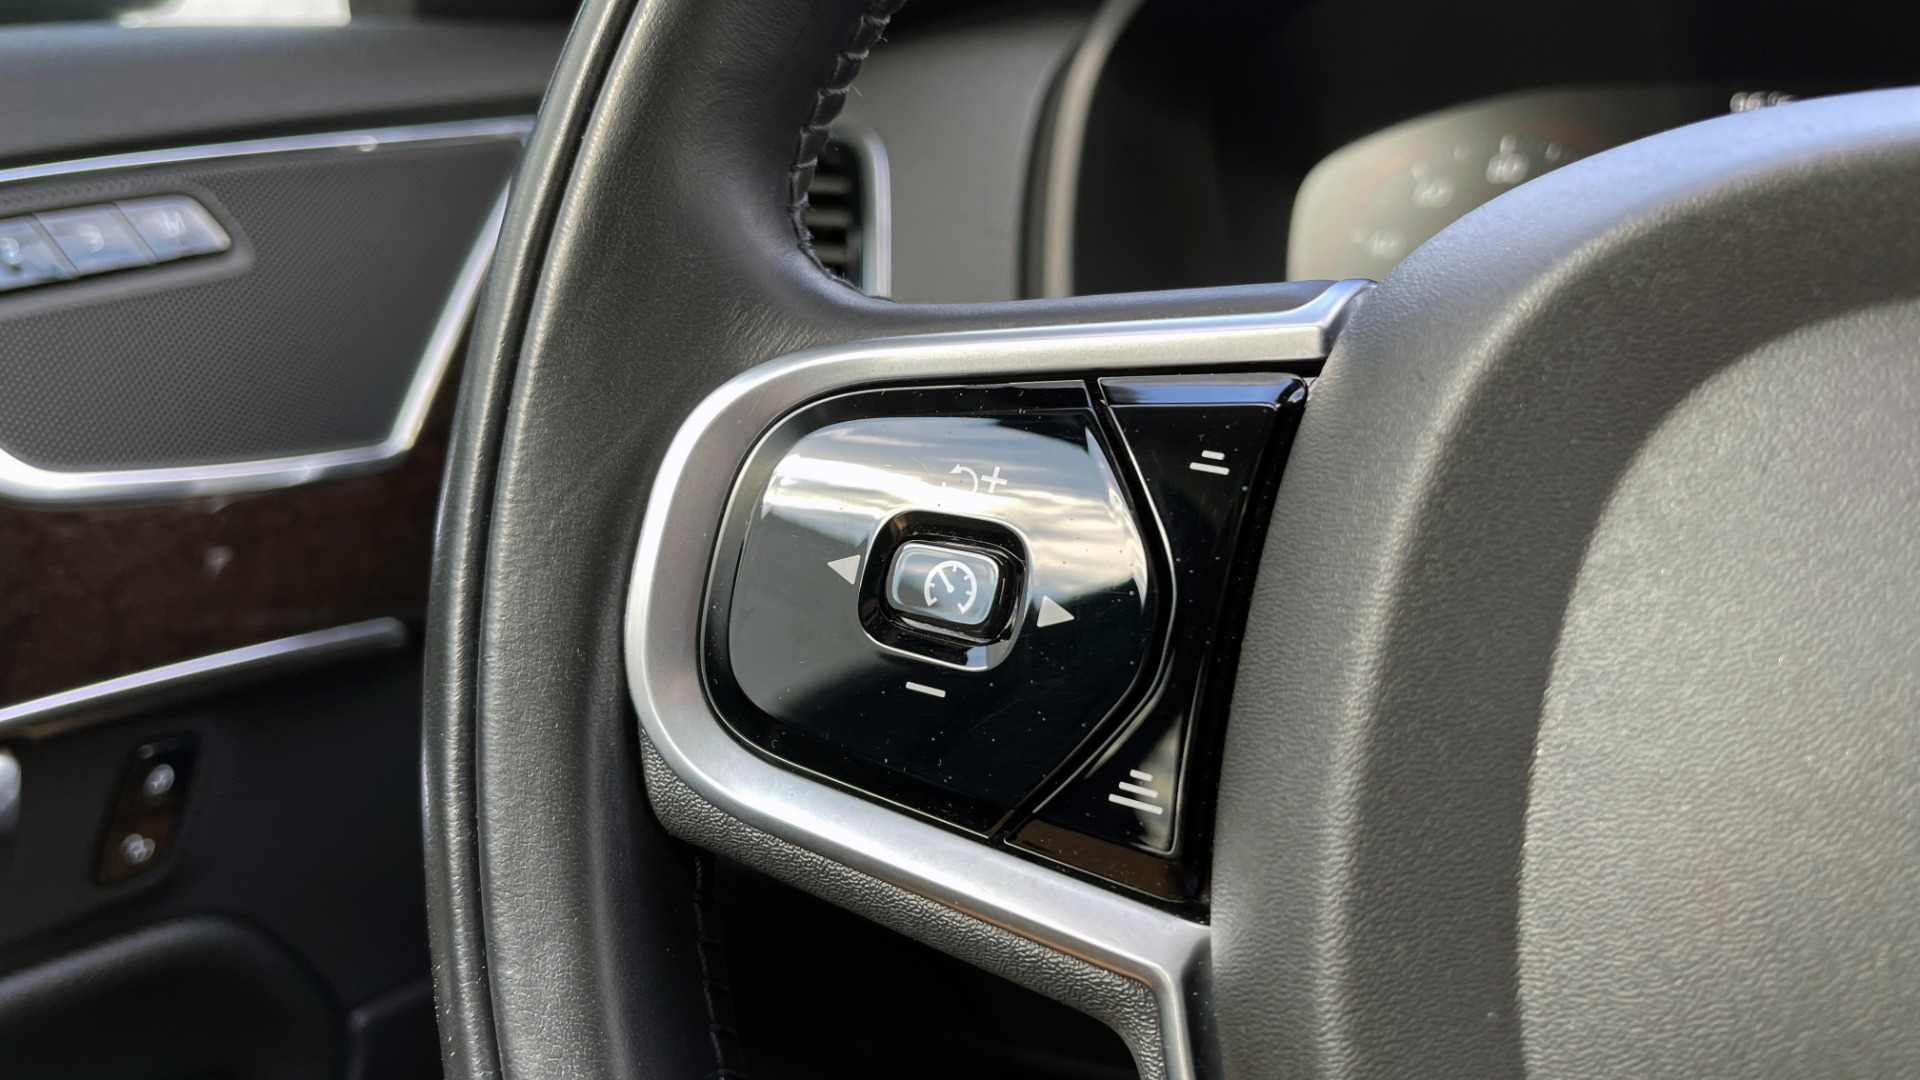 Used 2018 Volvo XC90 T5 AWD MOMENTUM PLUS / NAV / SUNROOF / 3-ROW / REARVIEW for sale $40,295 at Formula Imports in Charlotte NC 28227 42